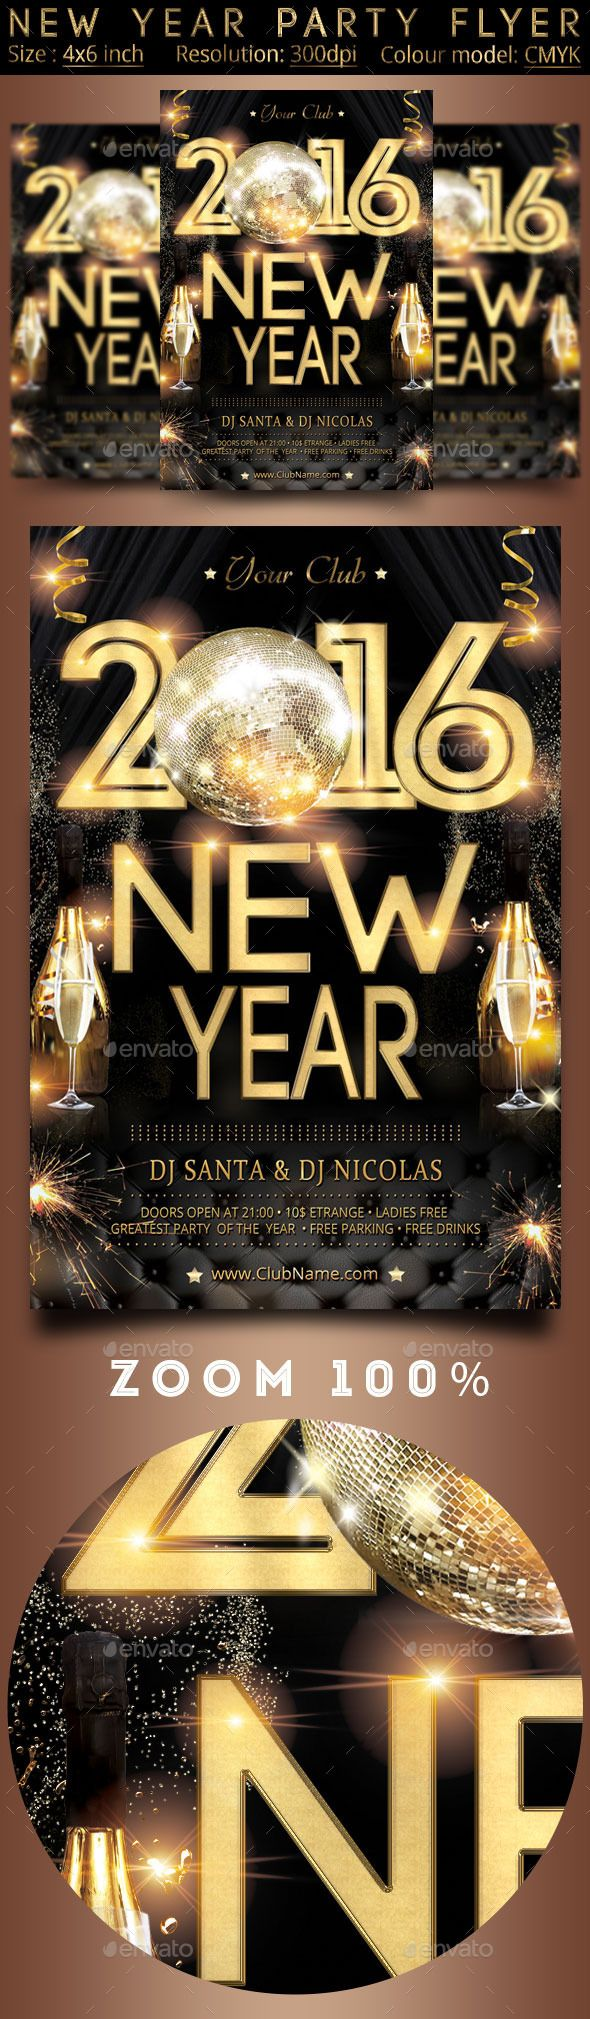 New Year Party Flyer Template #design Download: http://graphicriver.net/item/new-year-party-flyer/12755791?ref=ksioks